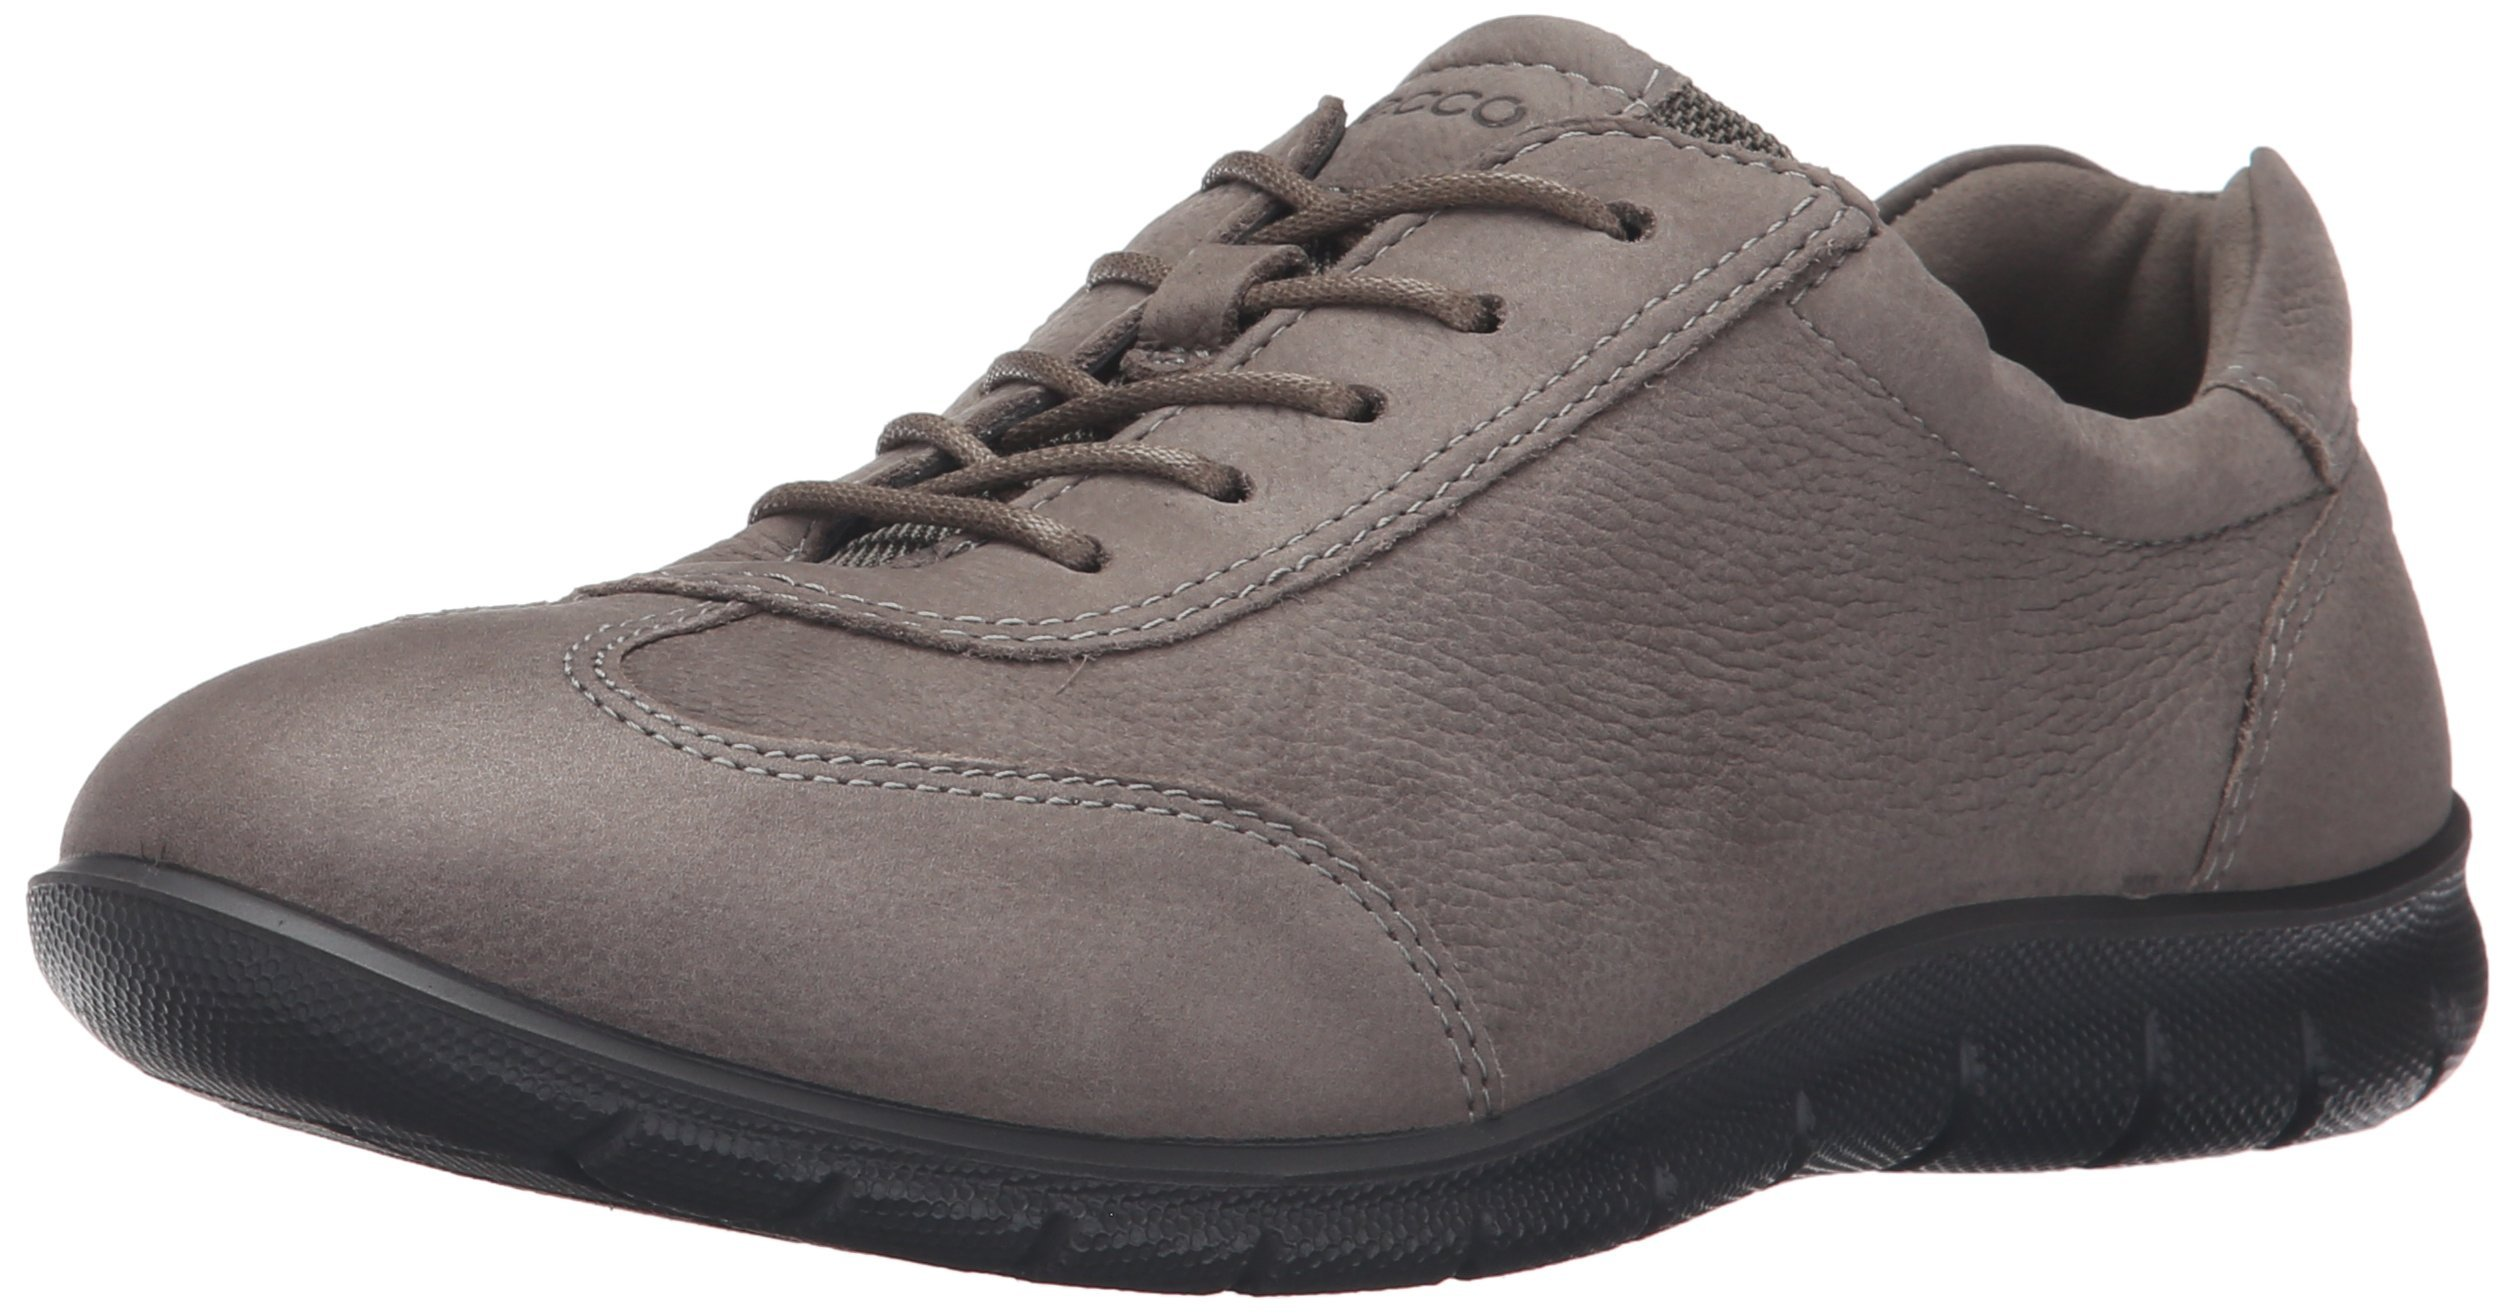 Ecco Footwear Womens Babett II Tie Oxford, Warm Grey, 36 EU/5-5.5 M US